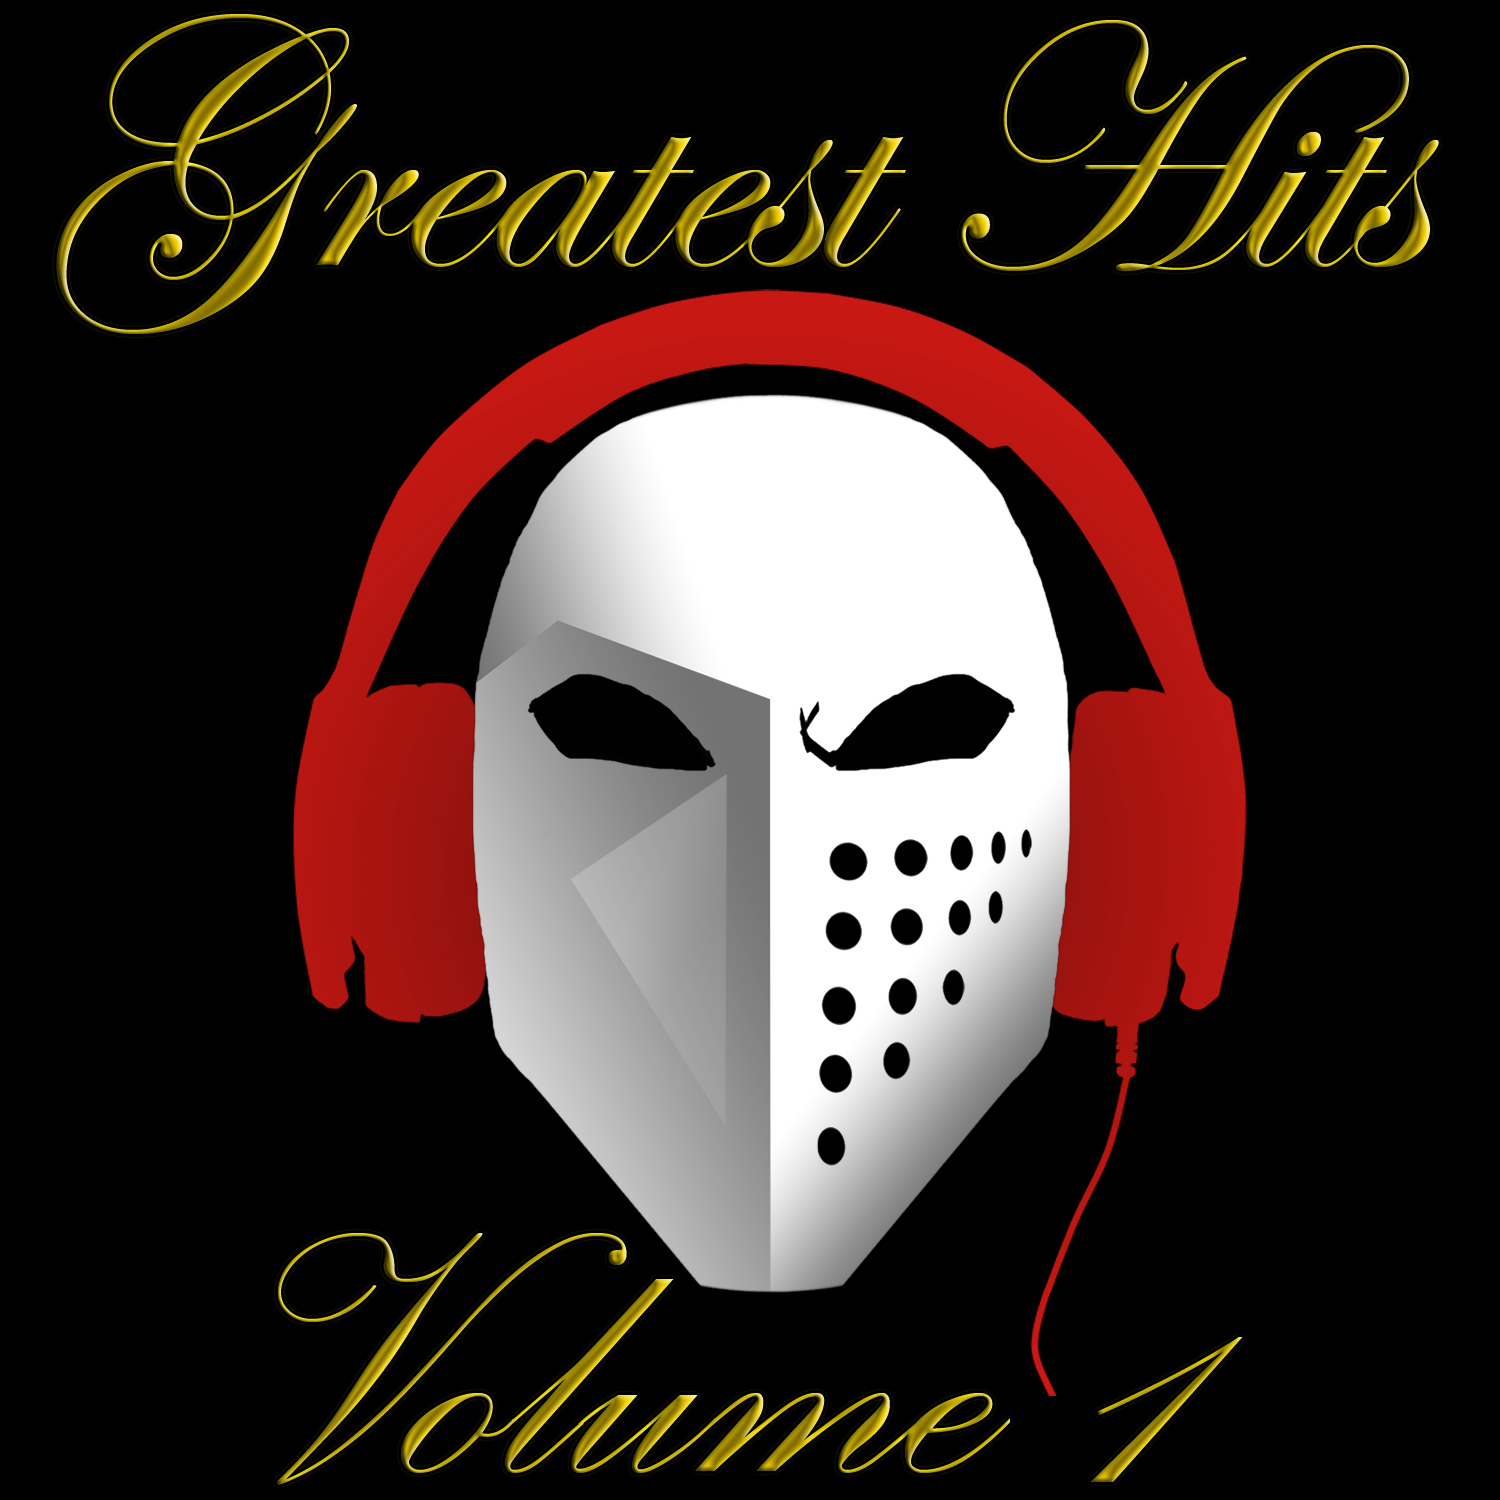 Trick or Treat Radio Greatest Hits Vol. 1 - Click the image above to download this compilation FOR FREE!